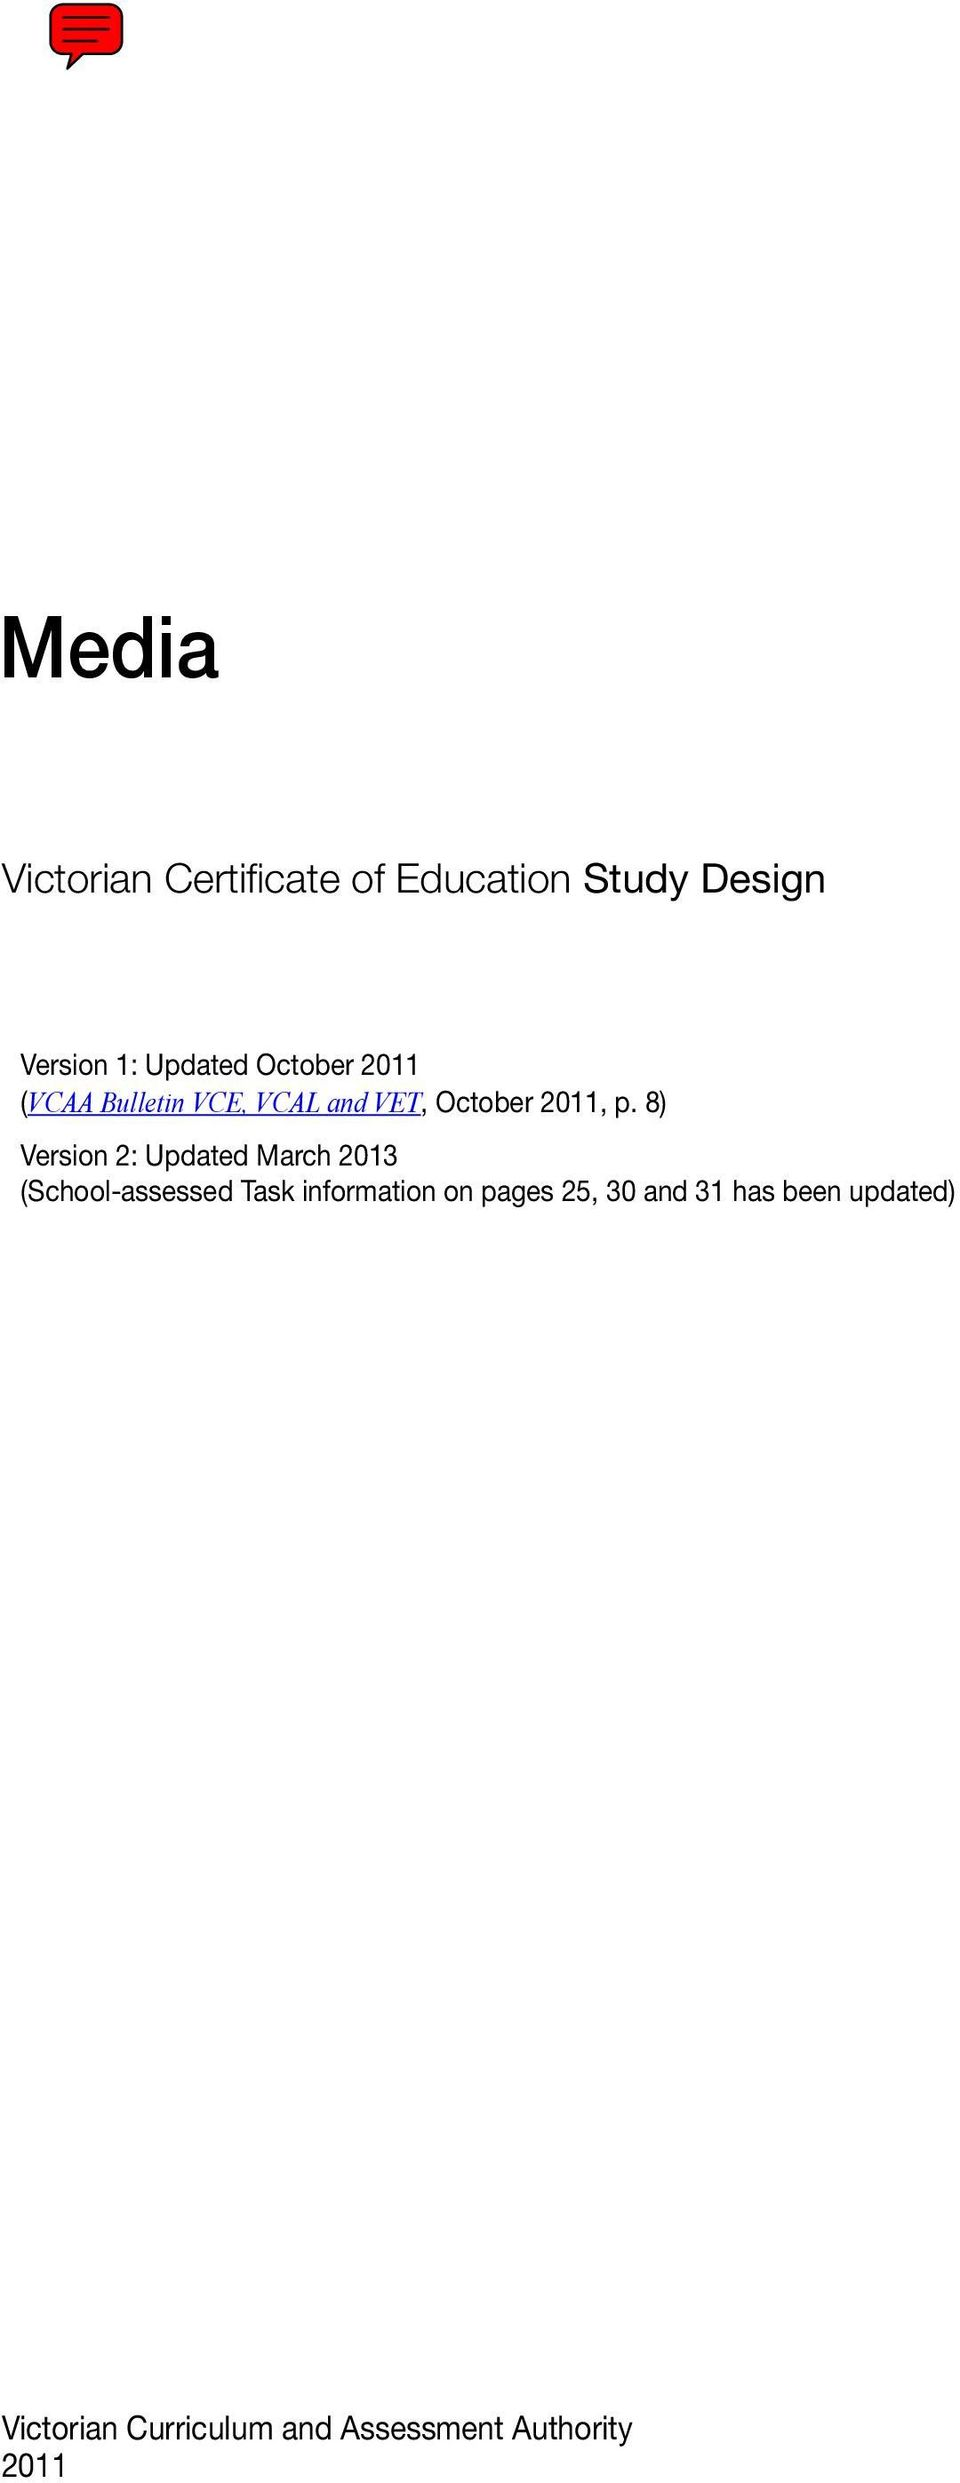 the victorian certificate of education english Victorian certificate of education (vce) (victorian curriculum and assessment authority) the victorian certificate of education (vce) is the certificate that the majority of students in victoria receive on satisfactory completion of their secondary education.